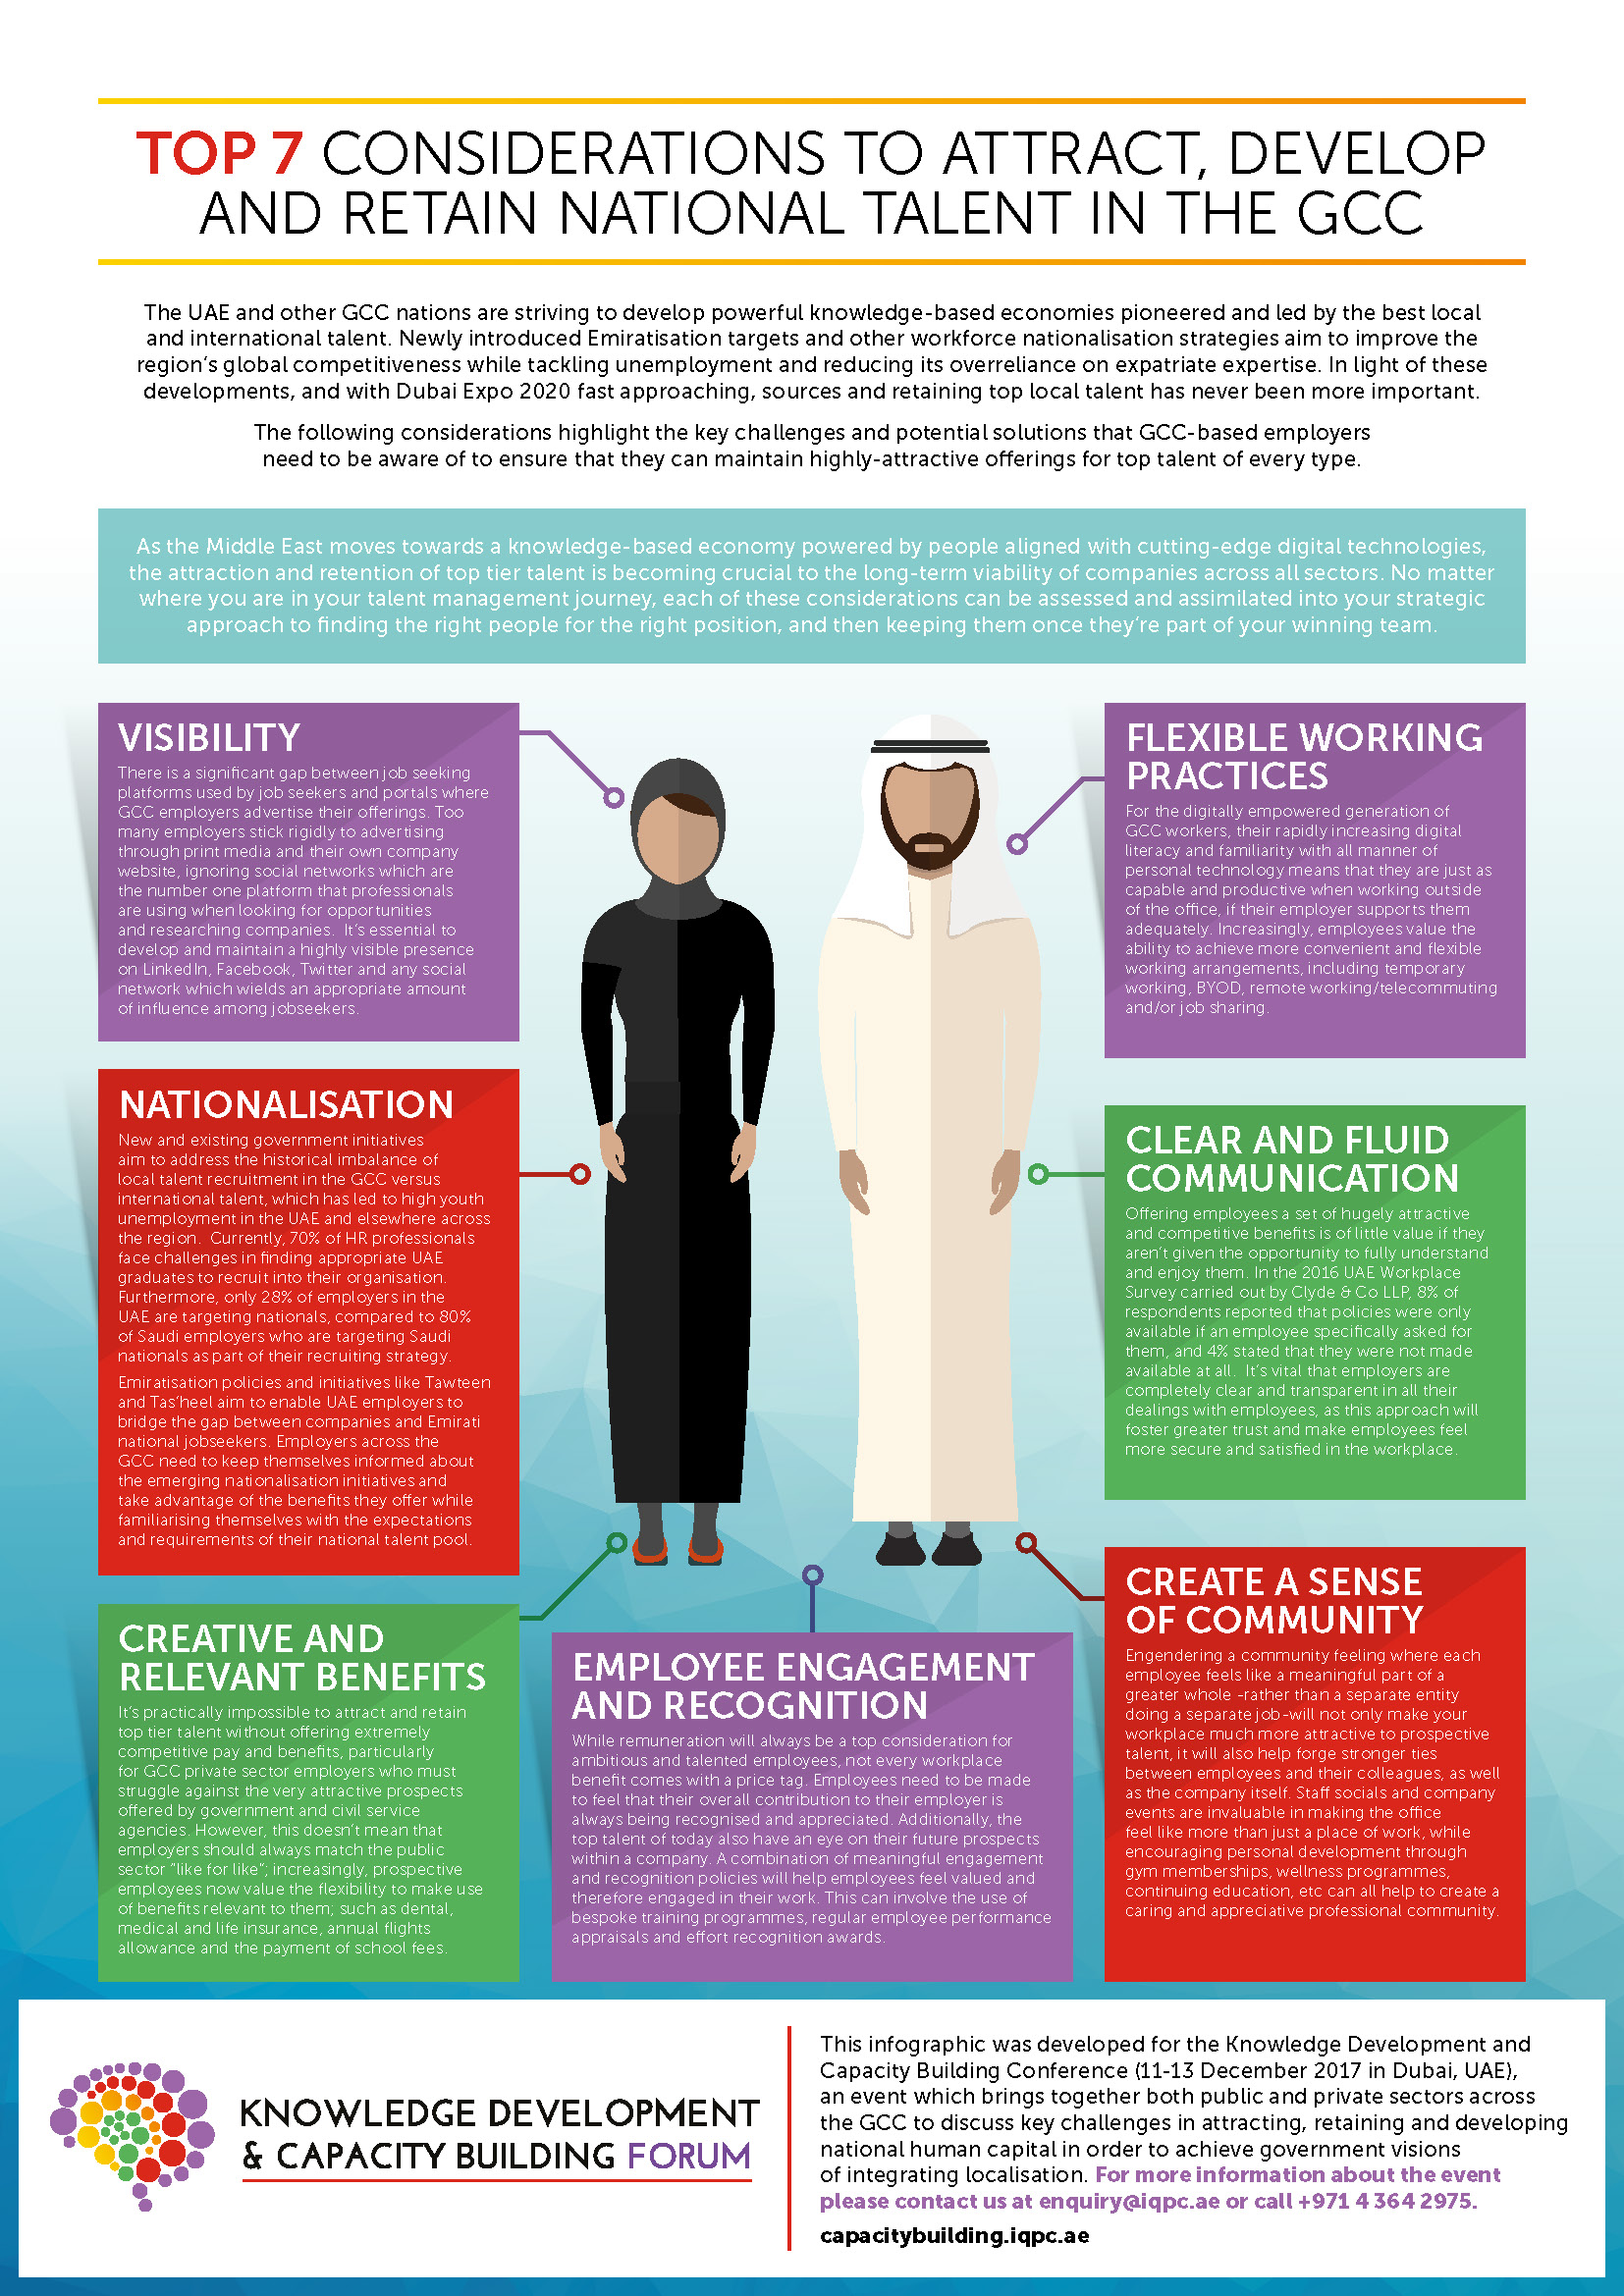 TOP 7 CONSIDERATIONS TO ATTRACT, DEVELOP AND RETAIN NATIONAL TALENT IN THE GCC